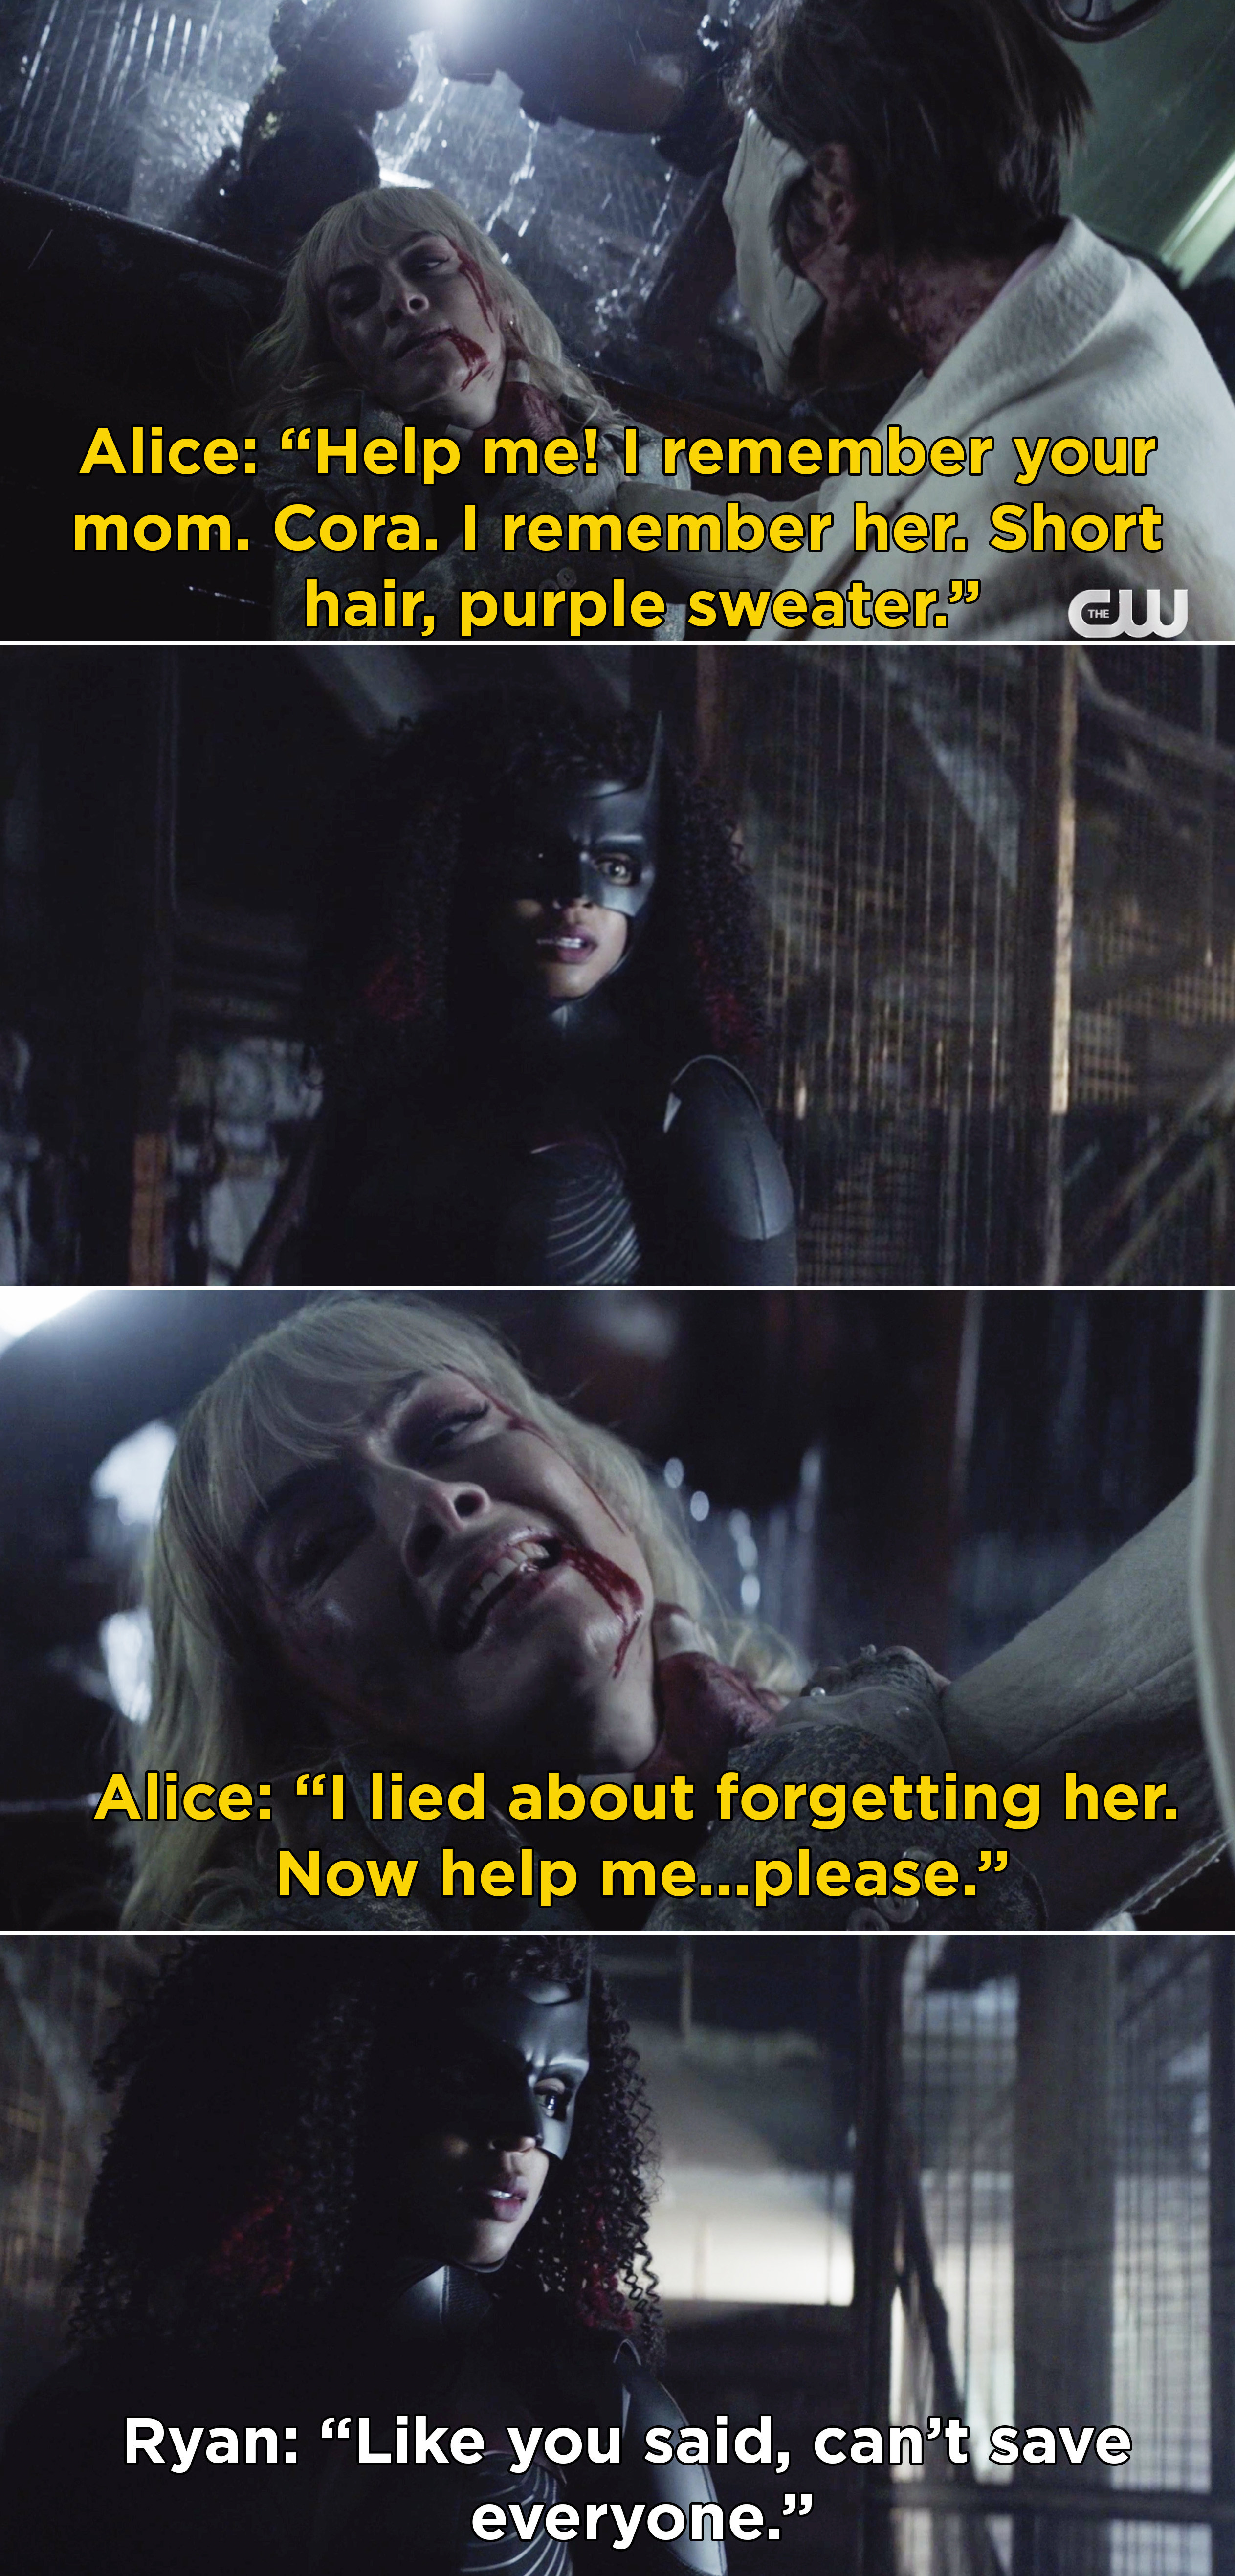 """Alice telling Ryan, """"I lied about forgetting her. Now help me...please"""" and Ryan saying, """"Like you said, can't save everyone"""""""